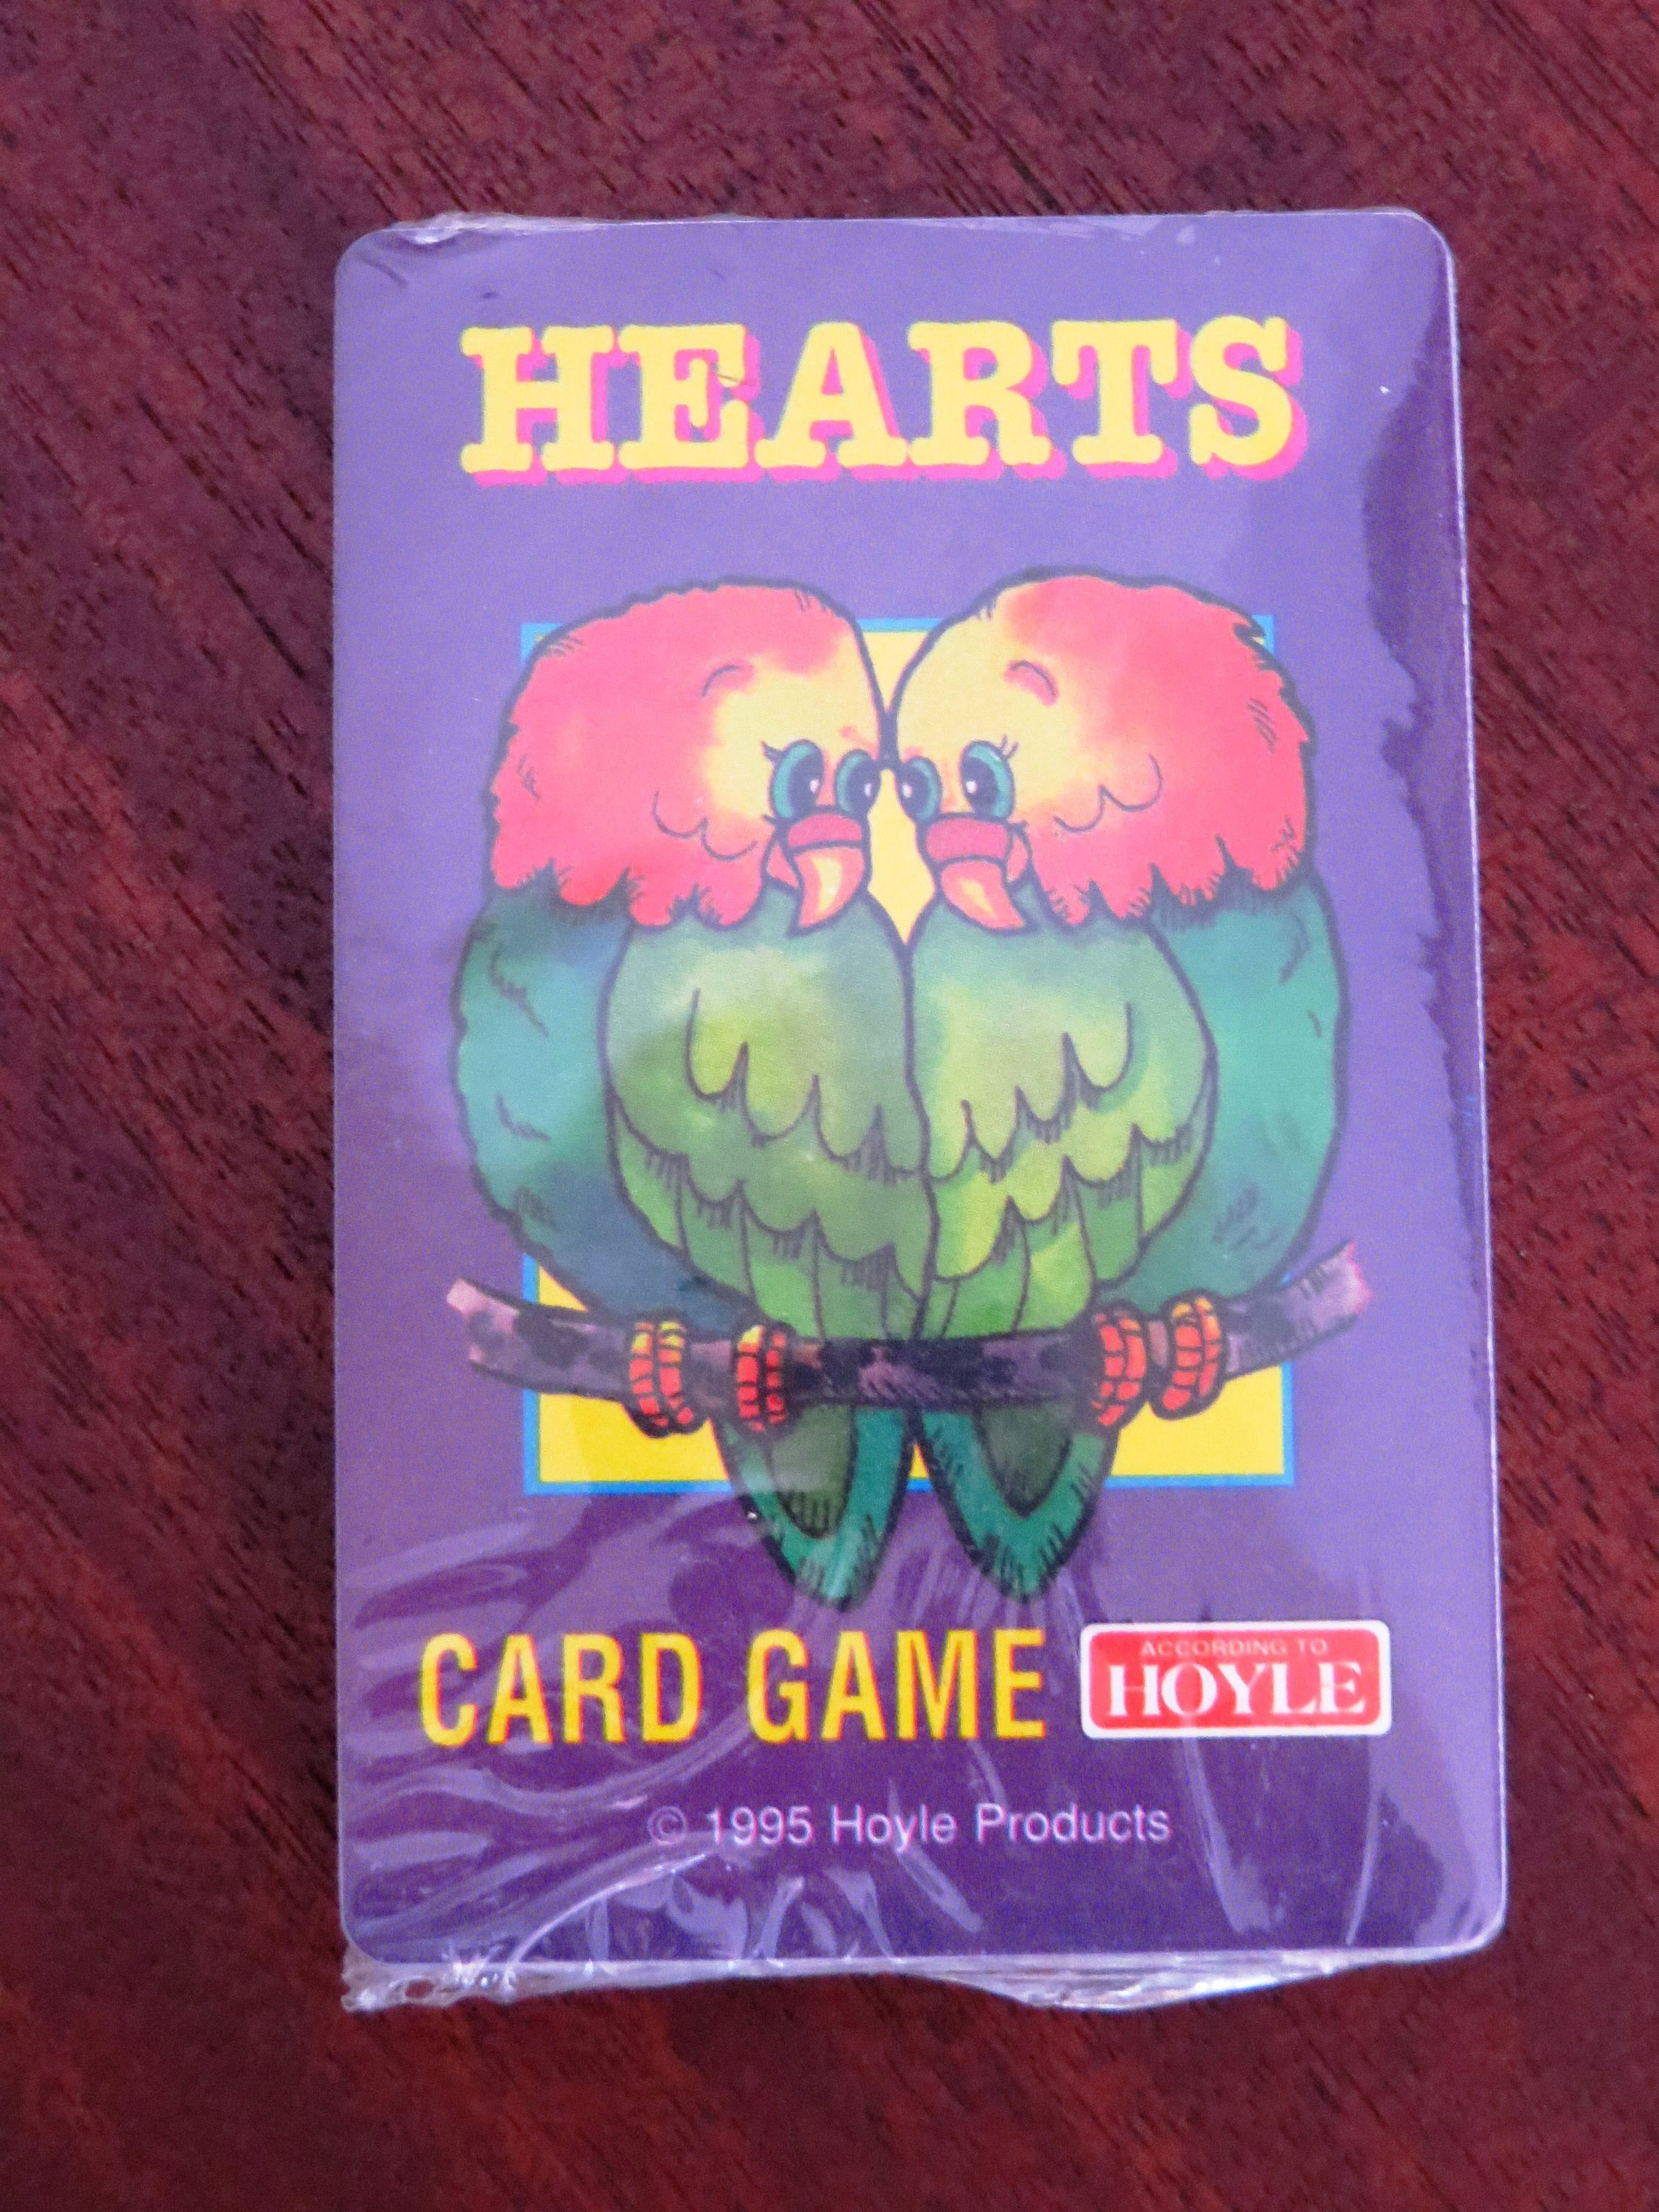 HEARTS Playing Cards Game 1995 UNUSED Single Full Deck